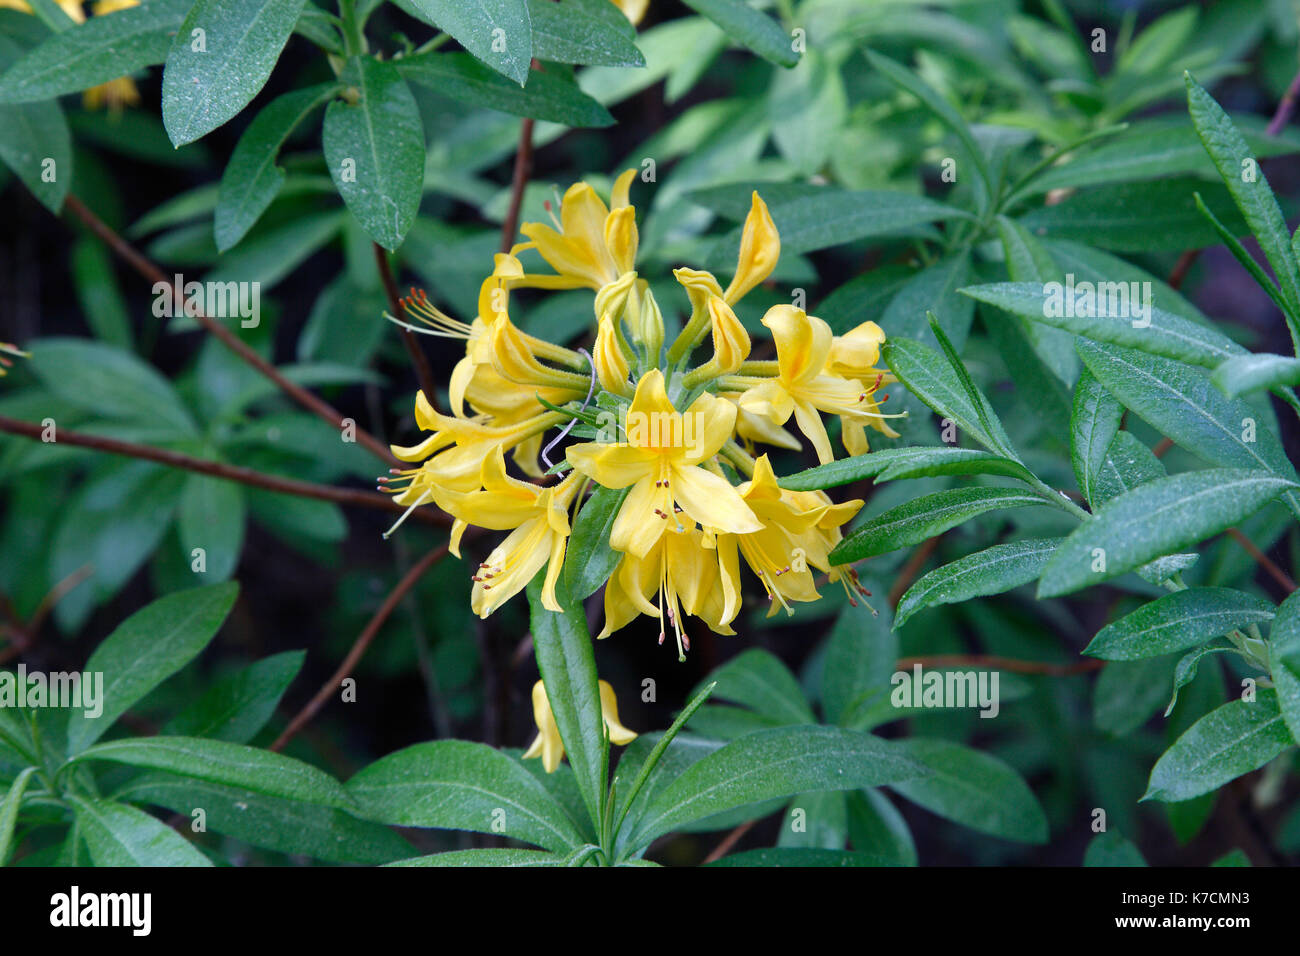 Yellow rhododendron flowers, in Lesvos island, Greece. - Stock Image